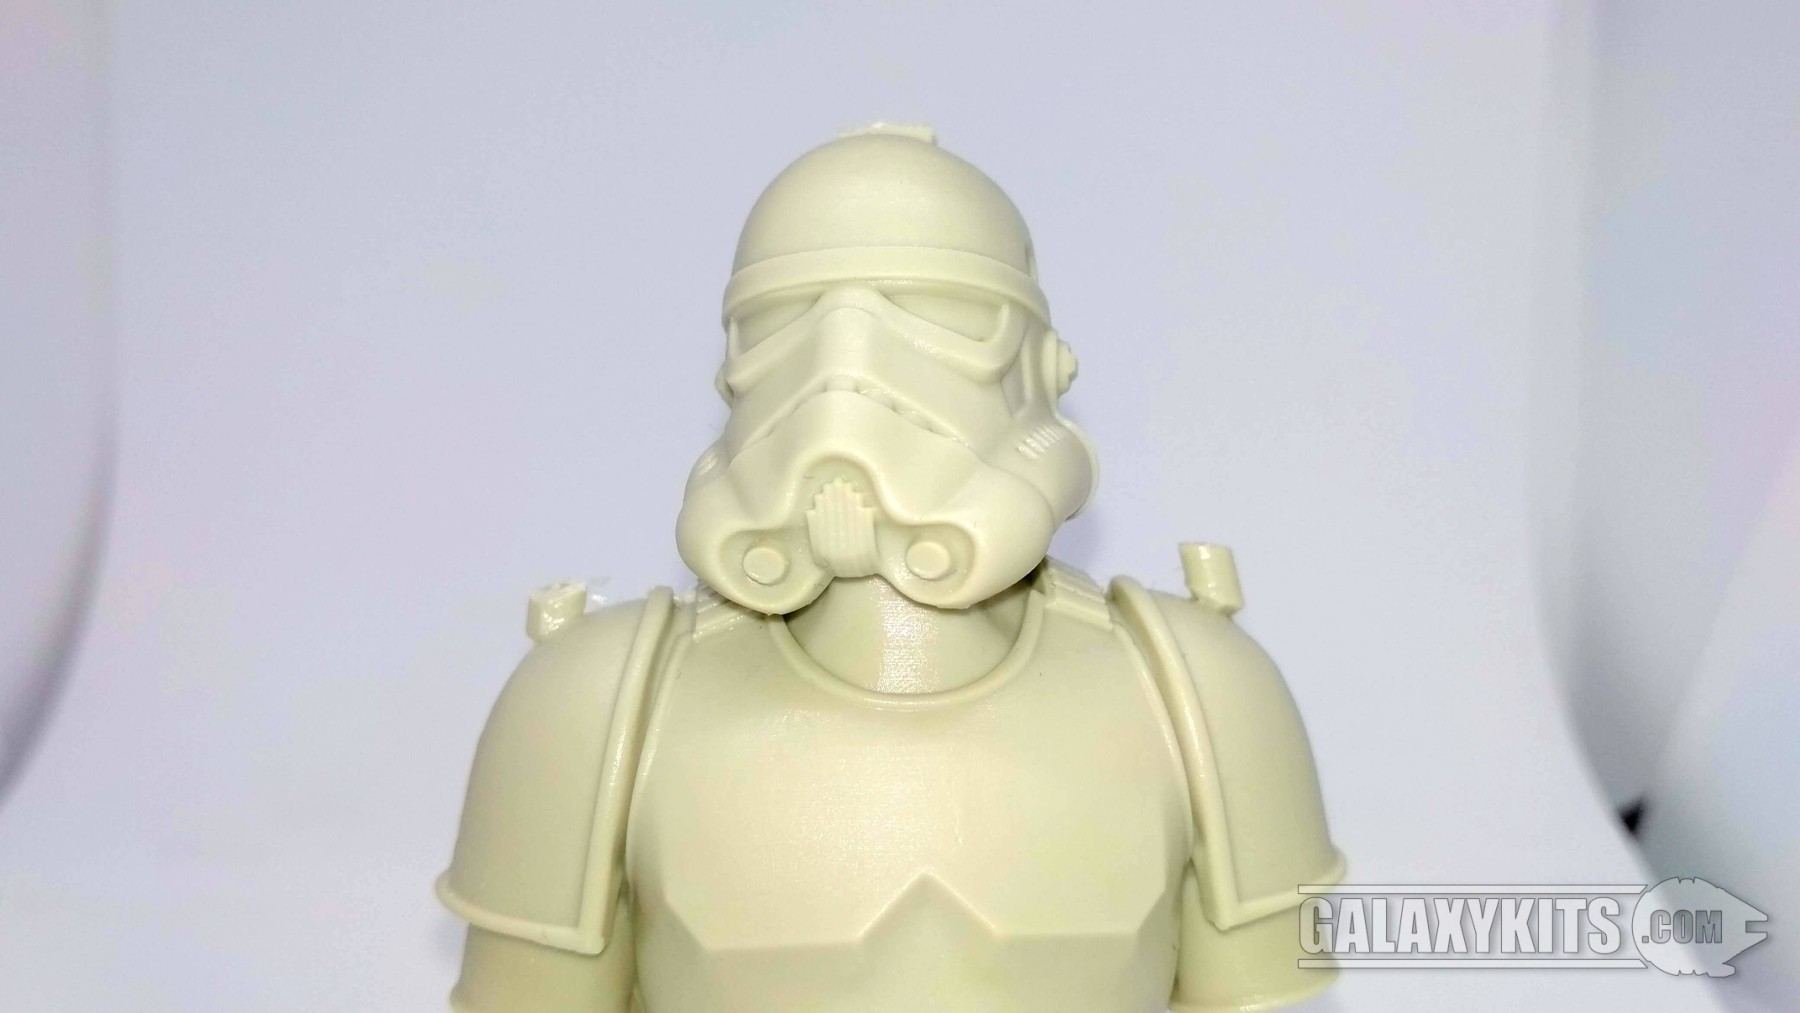 Star Wars Stormtrooper Bust / 1:10 / Aliexpress